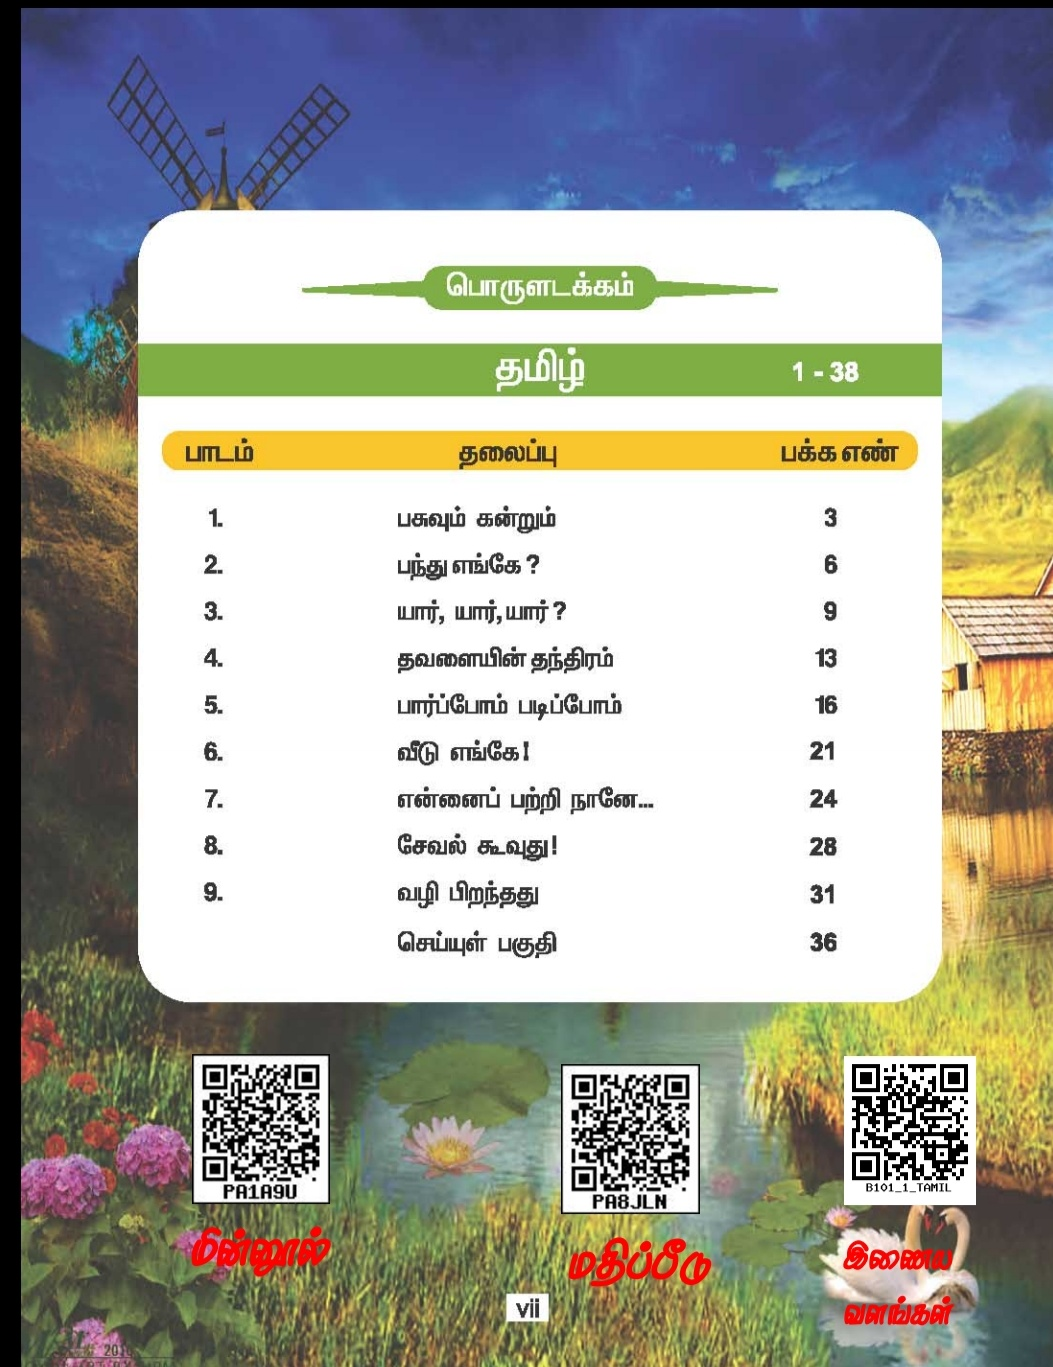 2nd & 3rd STD TAMIL BOOKS WITH QR CODE FOR PRACTICE TO